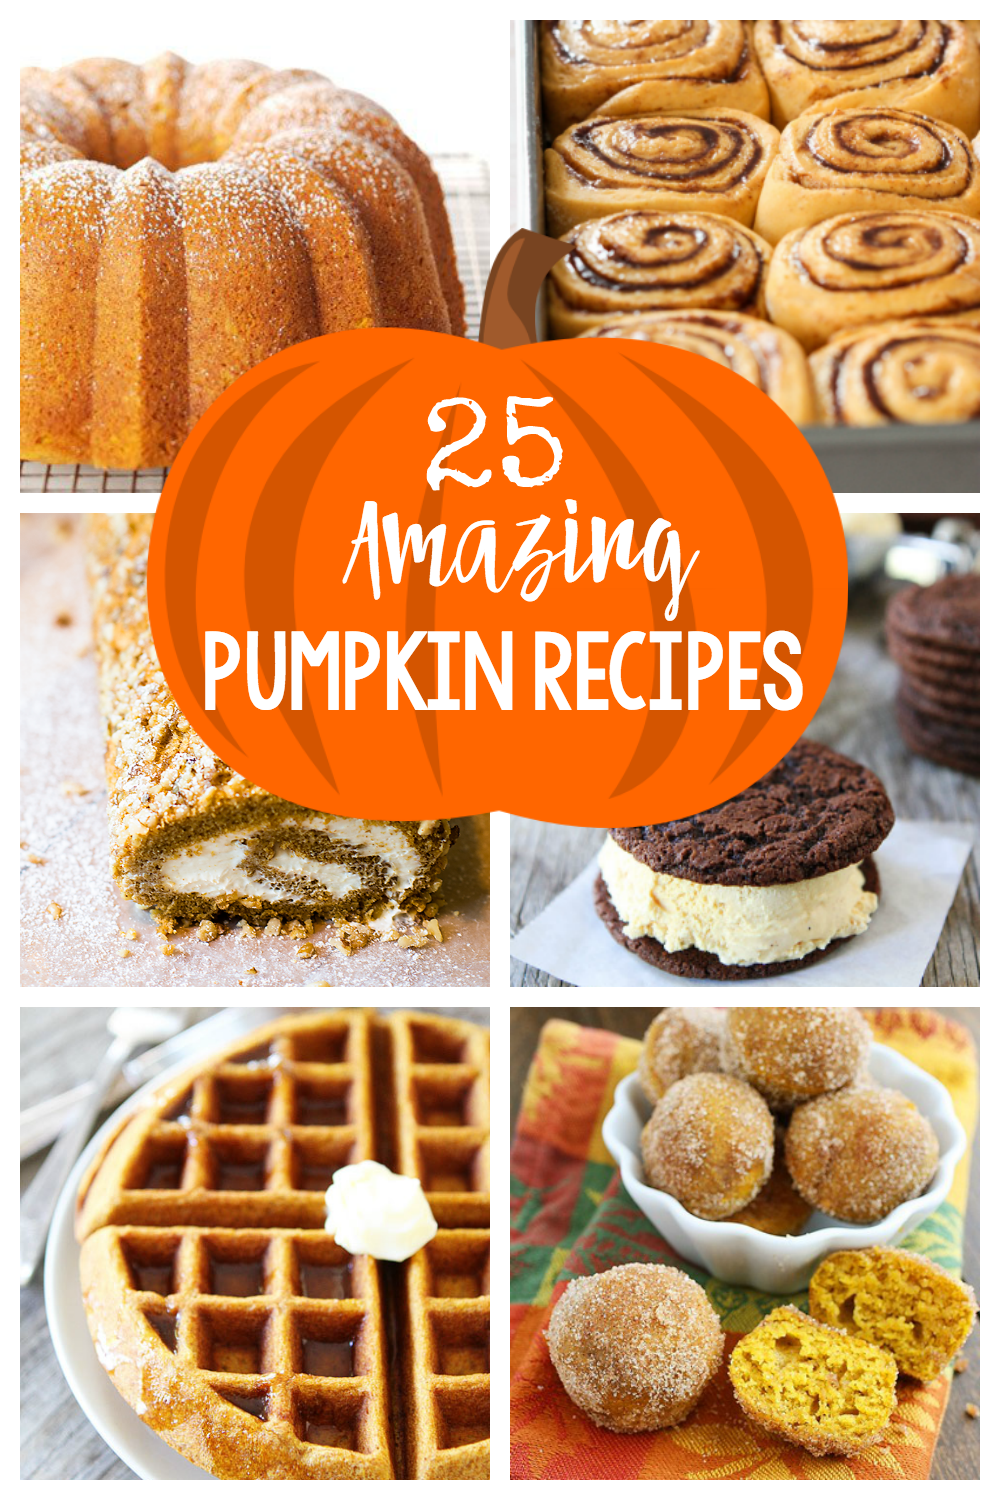 Nothing says Autumn like amazing pumpkin recipes. They make the house smell great on a crisp Fall day while they bake and they make you feel warm and cozy when you eat them. If you're a pumpkin lover you're going to love these easy to make pumpkin recipes-everything from breakfast to dessert. #halloween #pumpkin #pumpkinspice #pumpkinbread